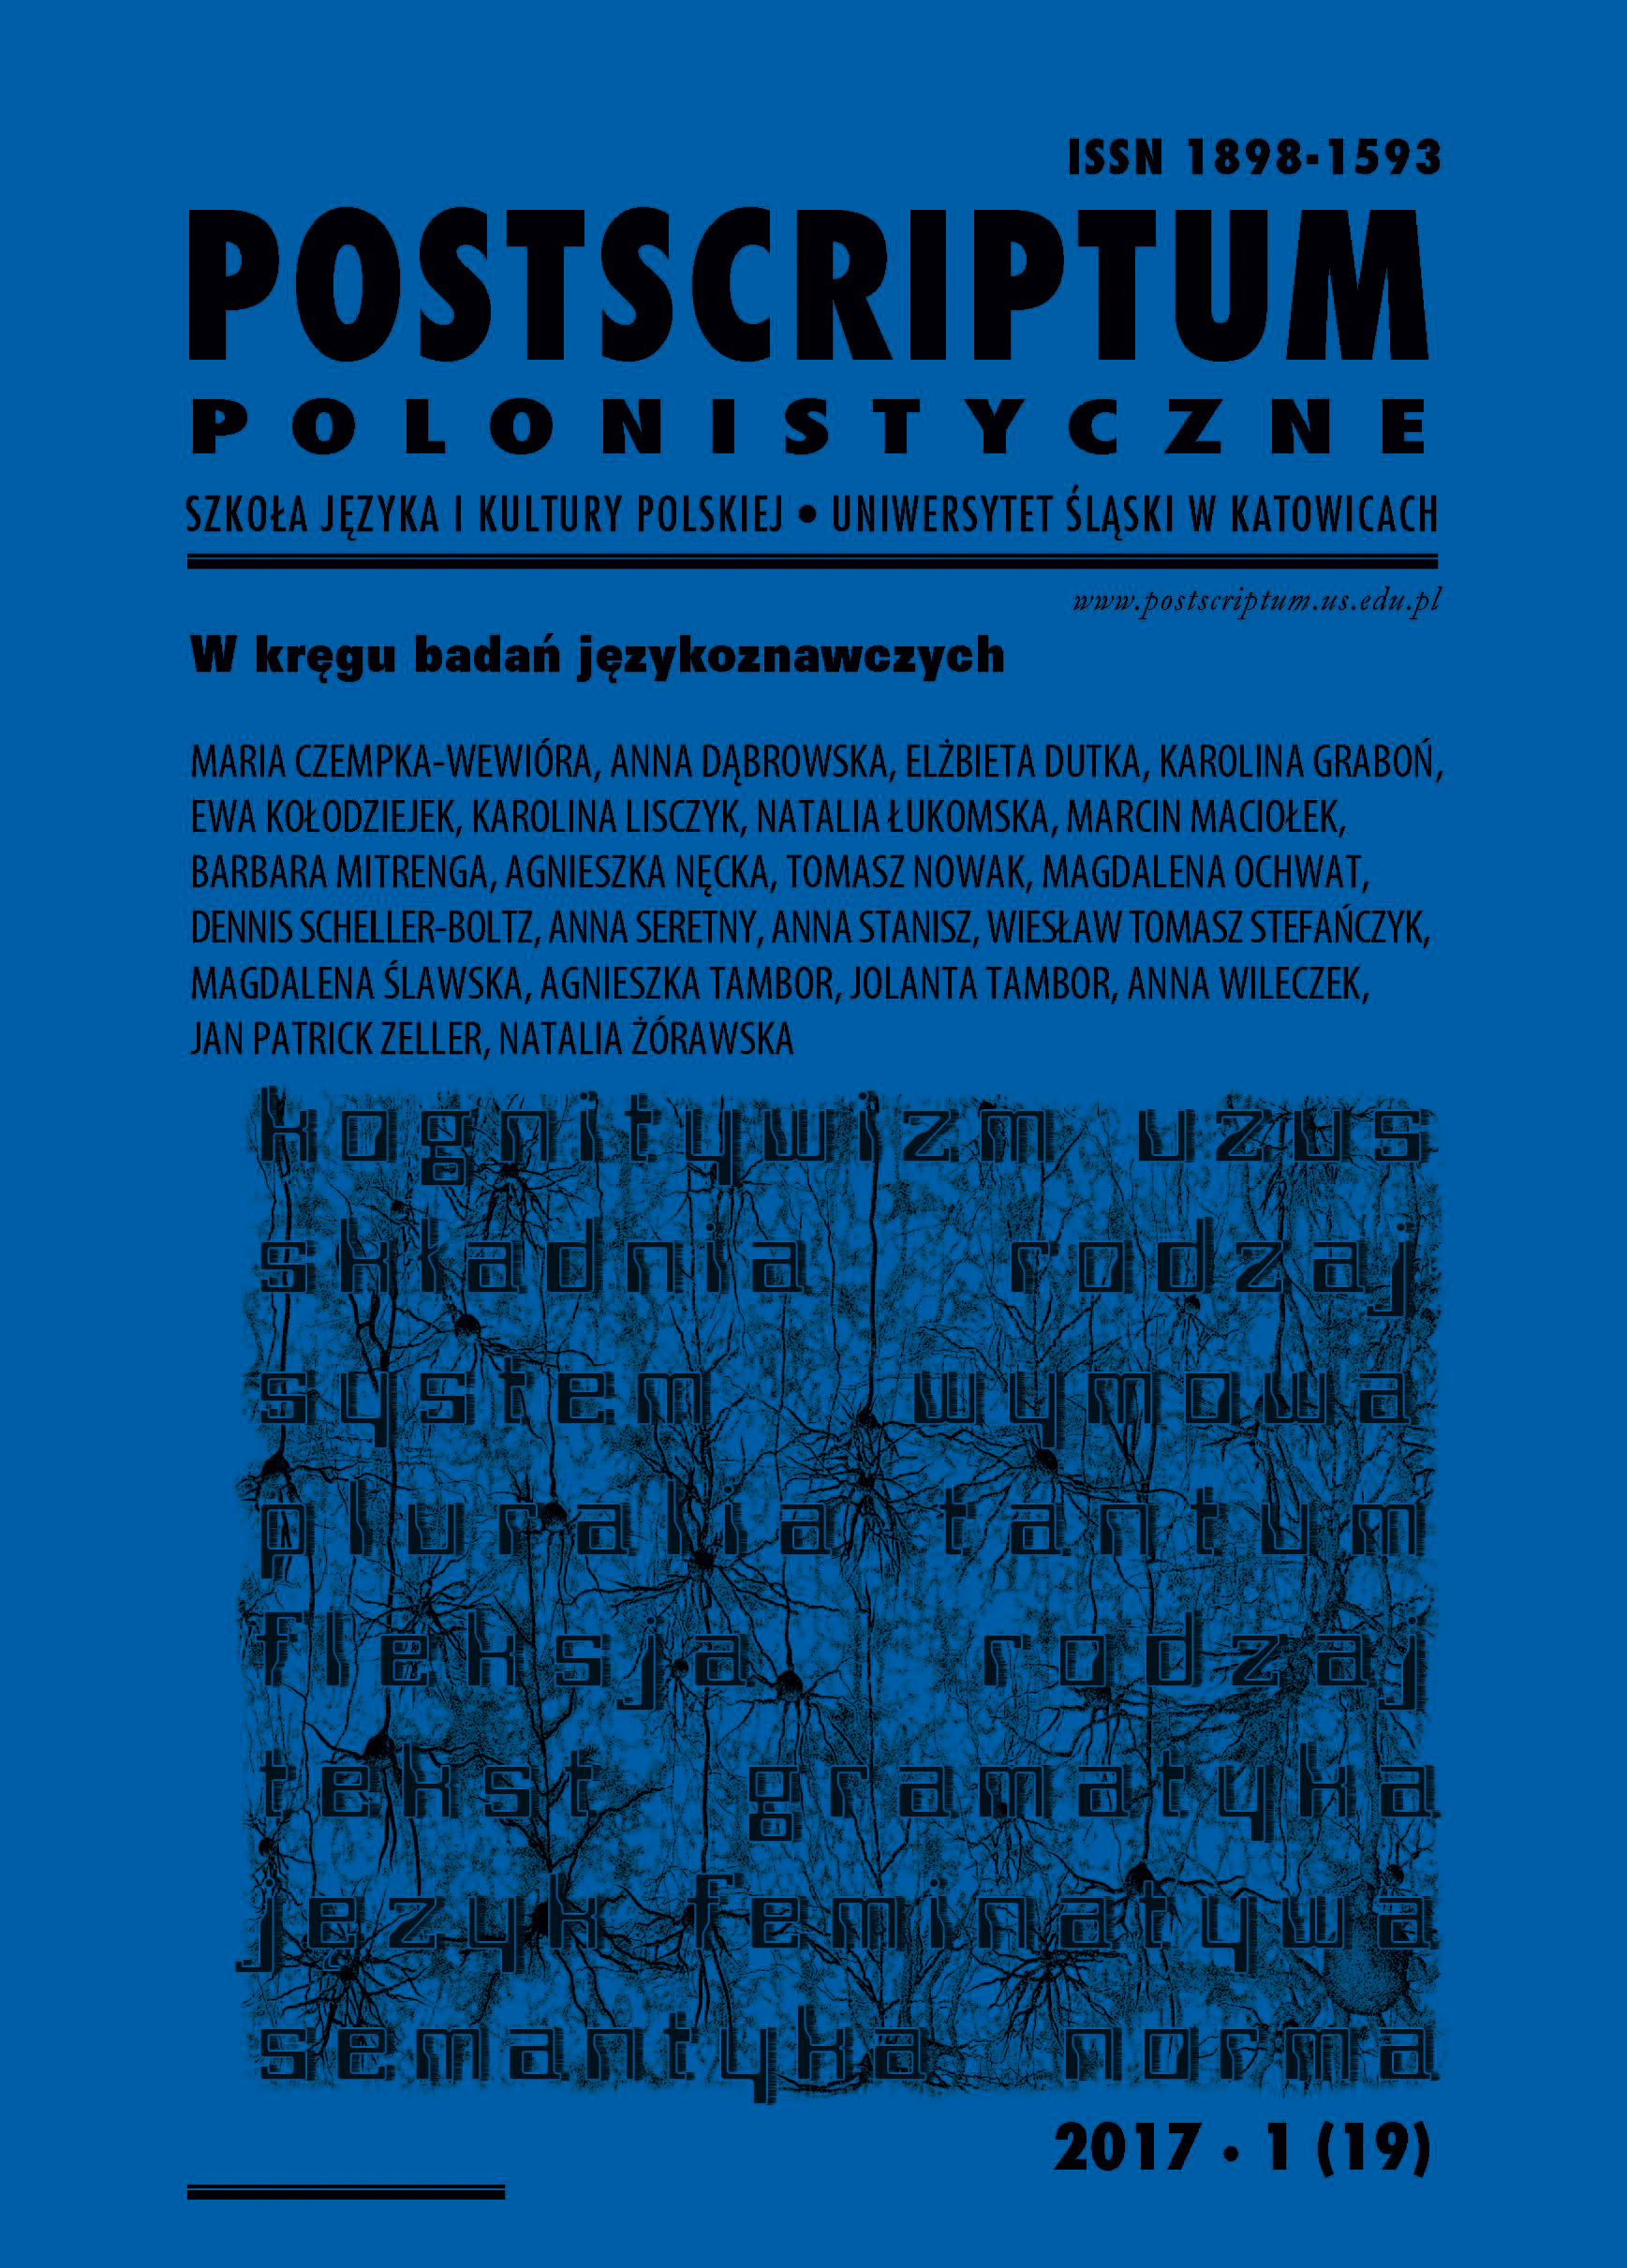 Silesian essay writing? Silesian school of essay writing? On Mariusz Jochemczyk's book, Facing tradition. Sketches in Silesian oikology Cover Image